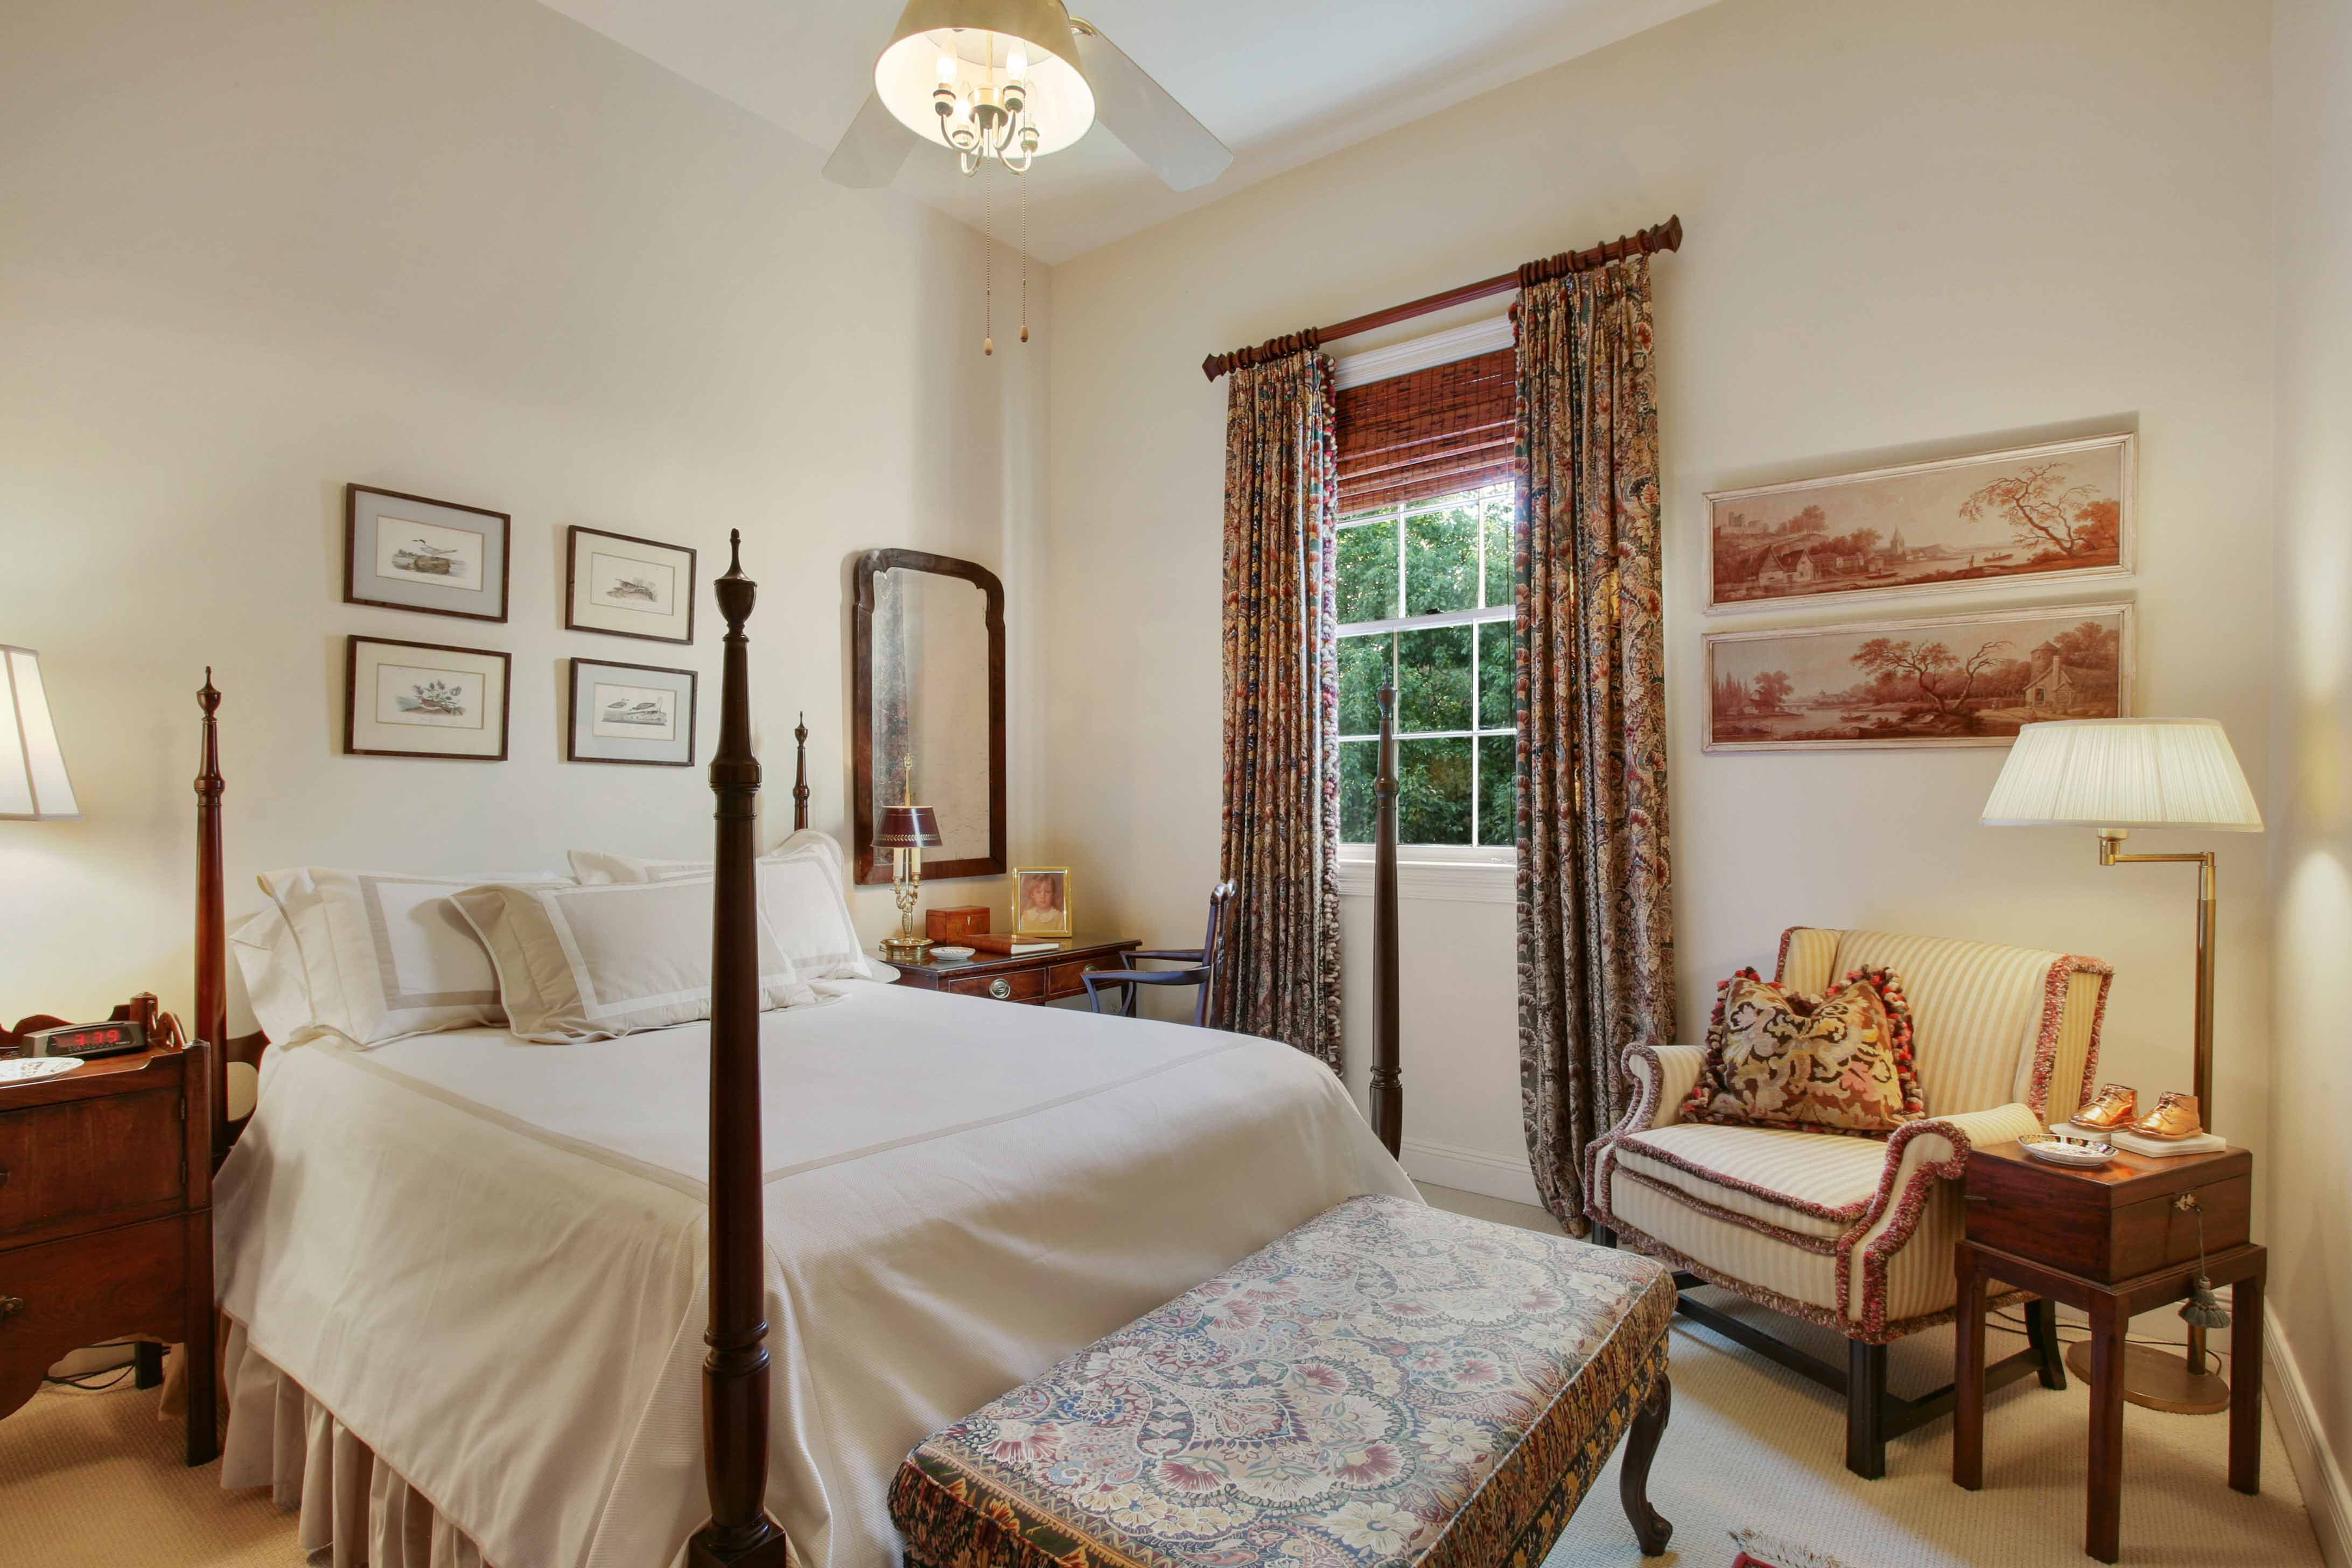 Beautiful french quarter home with classic appeal asks 1 for Classic homes realty llc